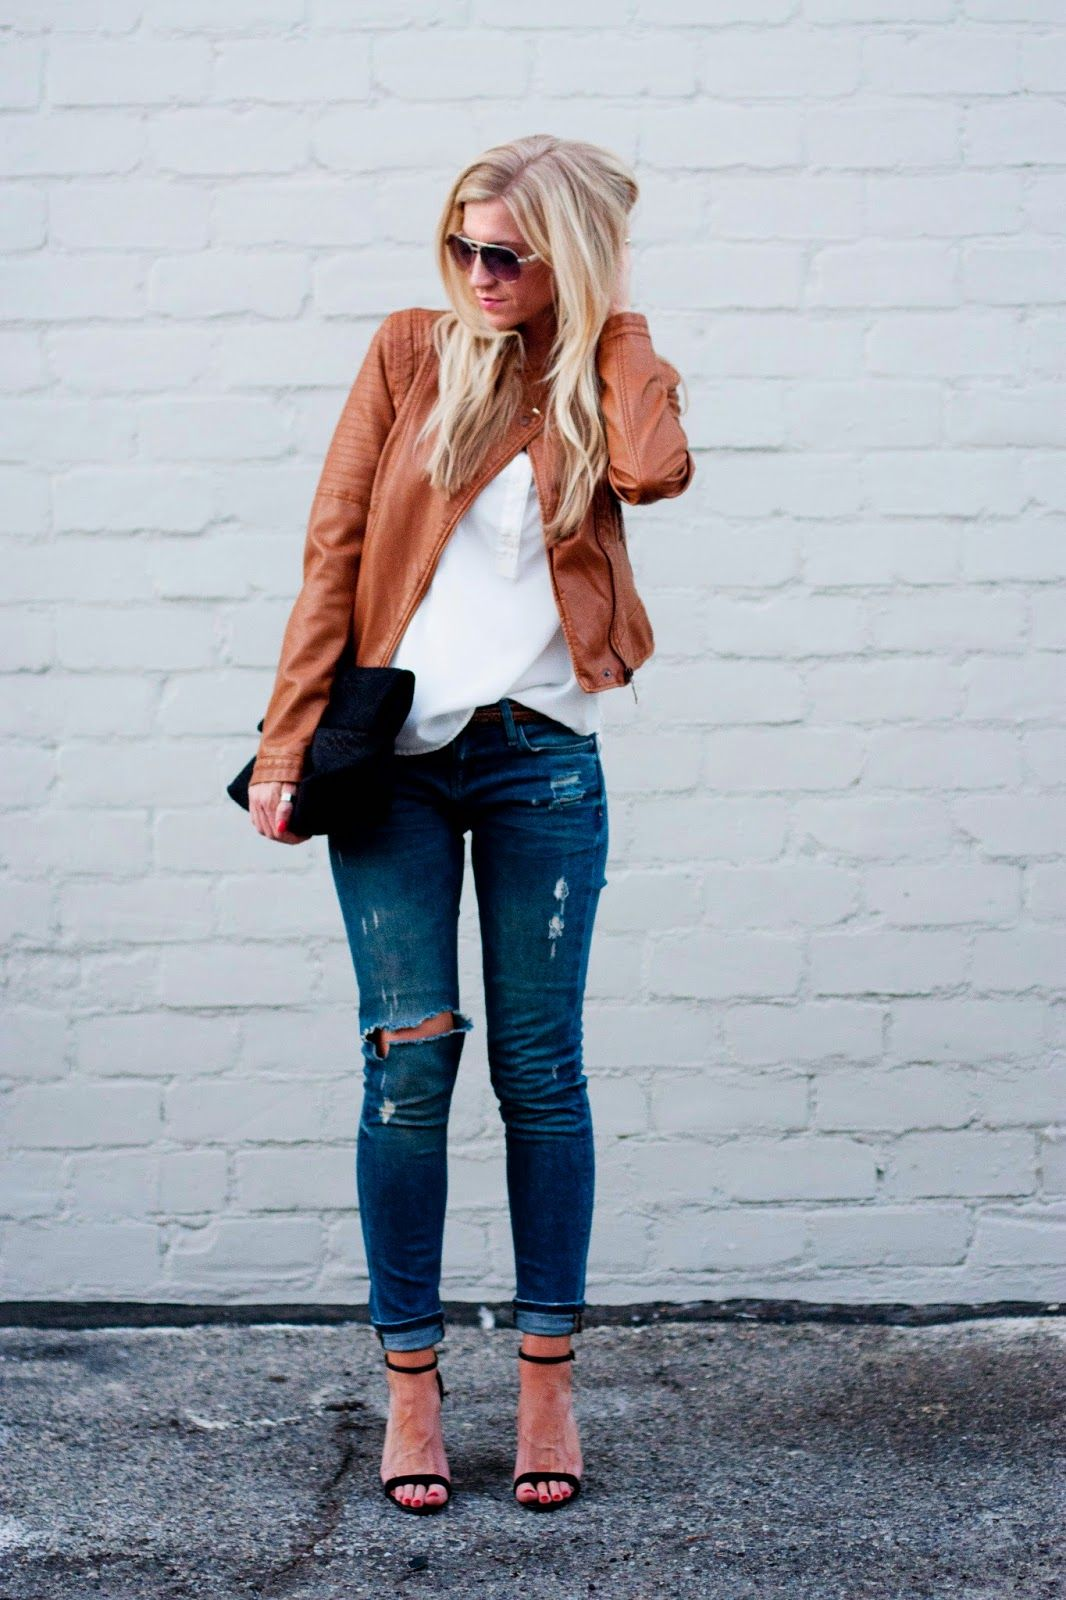 BLACK AND BROWN (Elle Apparel) Leather jacket outfits